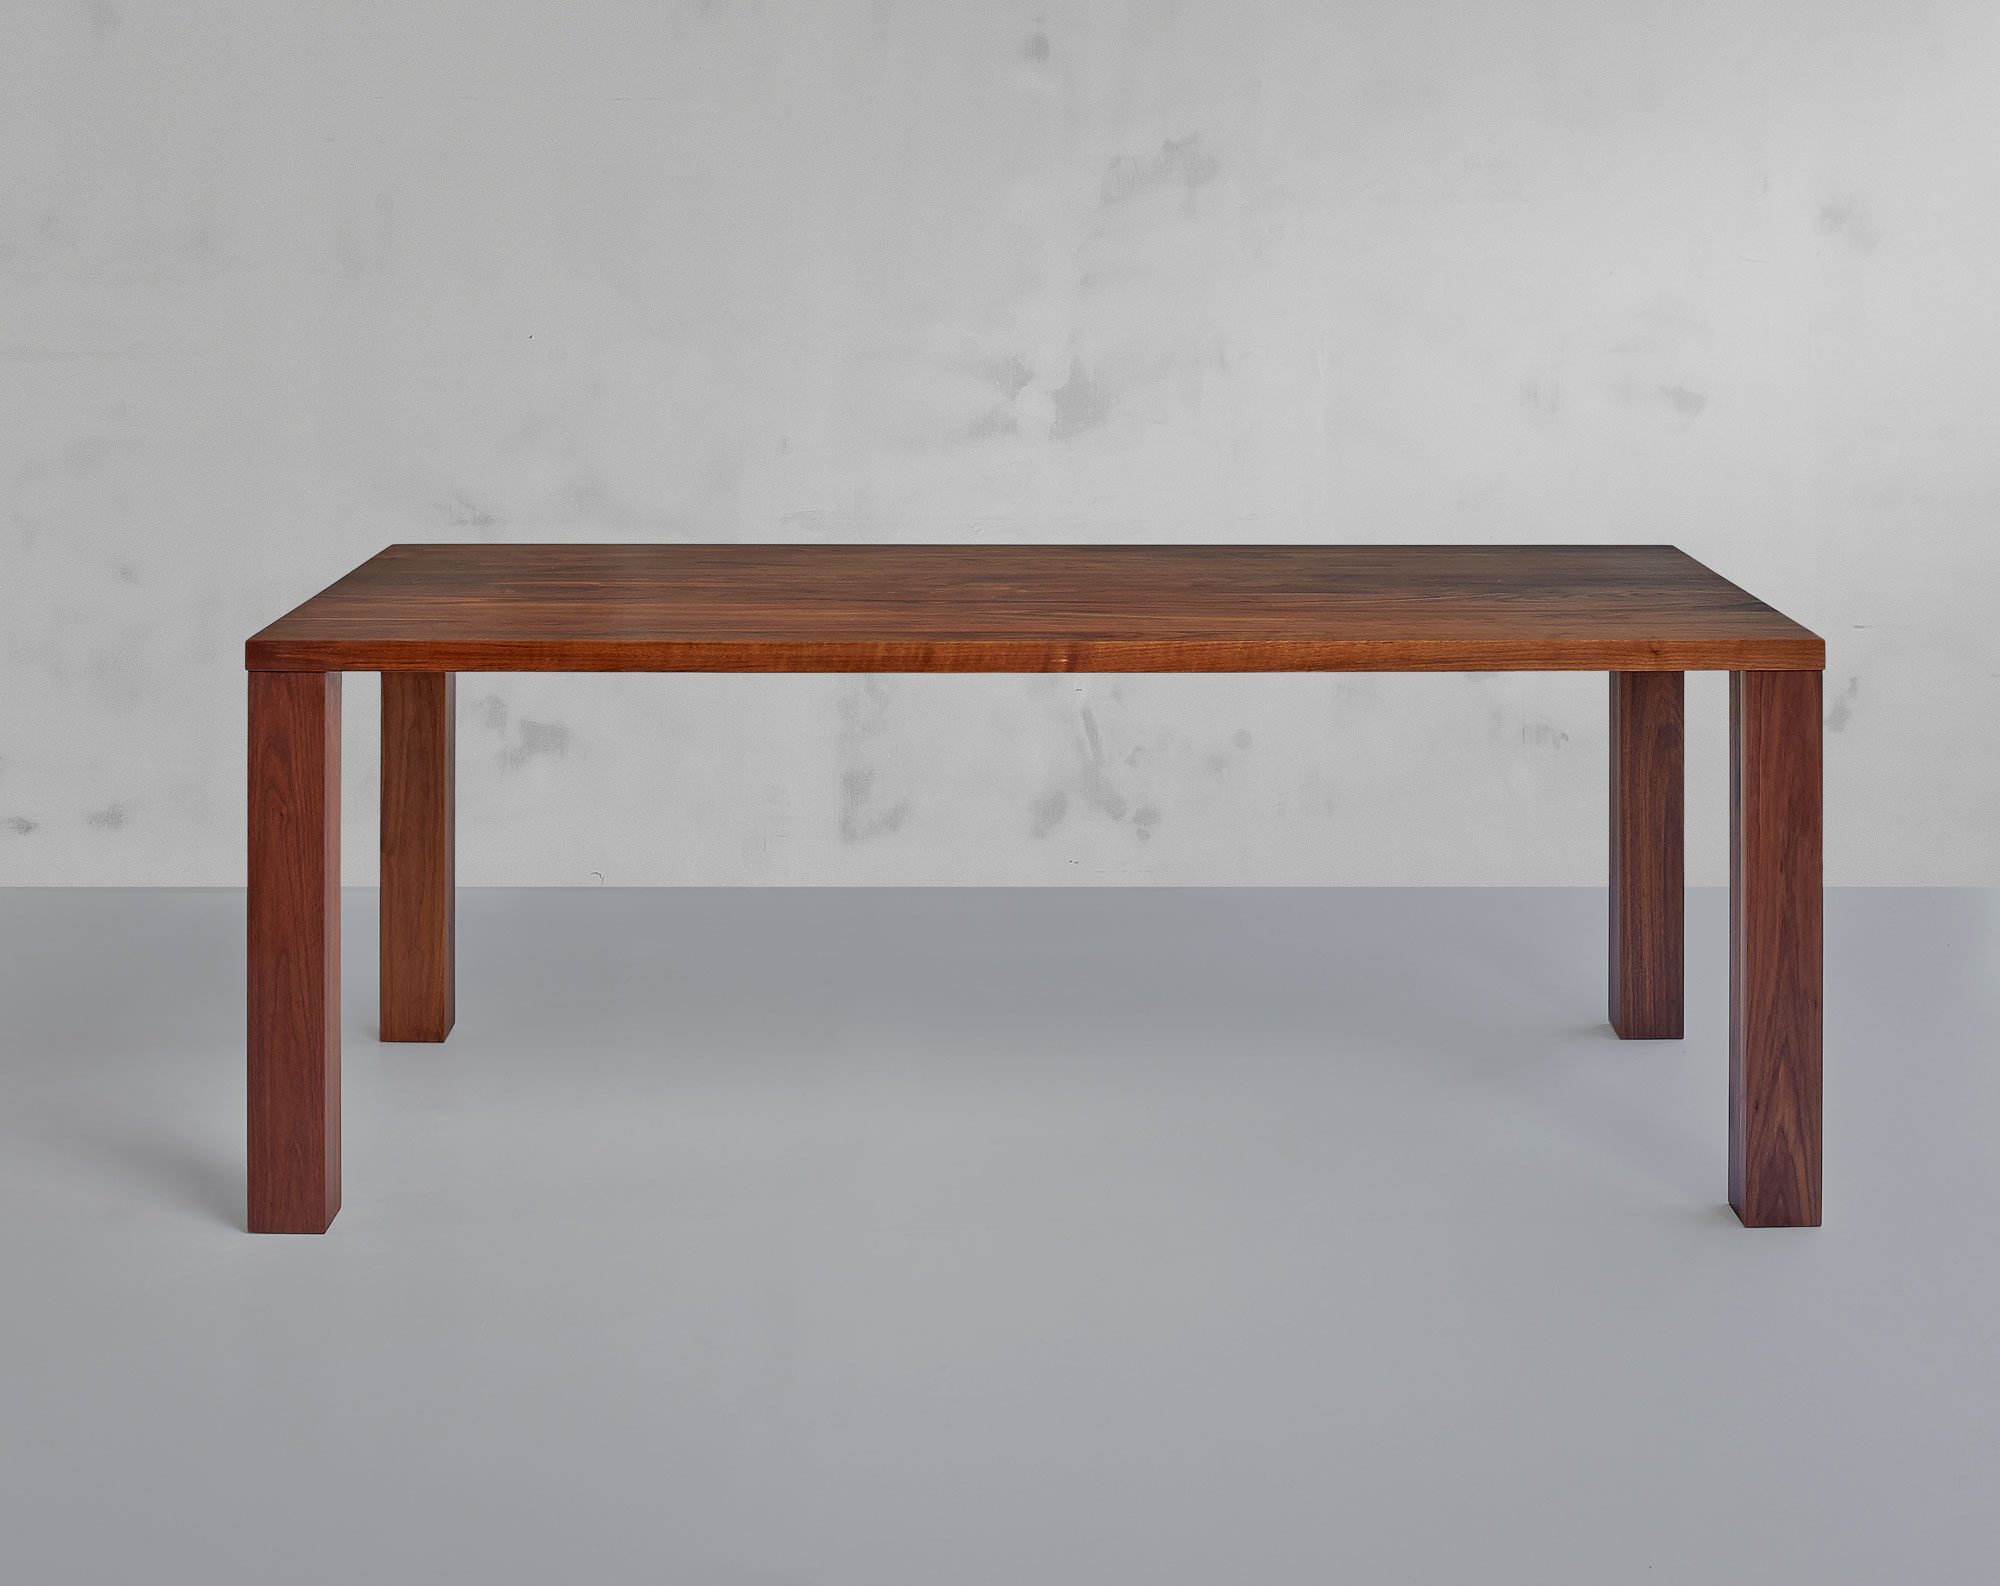 Frameless Solid Wood Table IUSTUS 0963pk custom made in solid wood by vitamin design